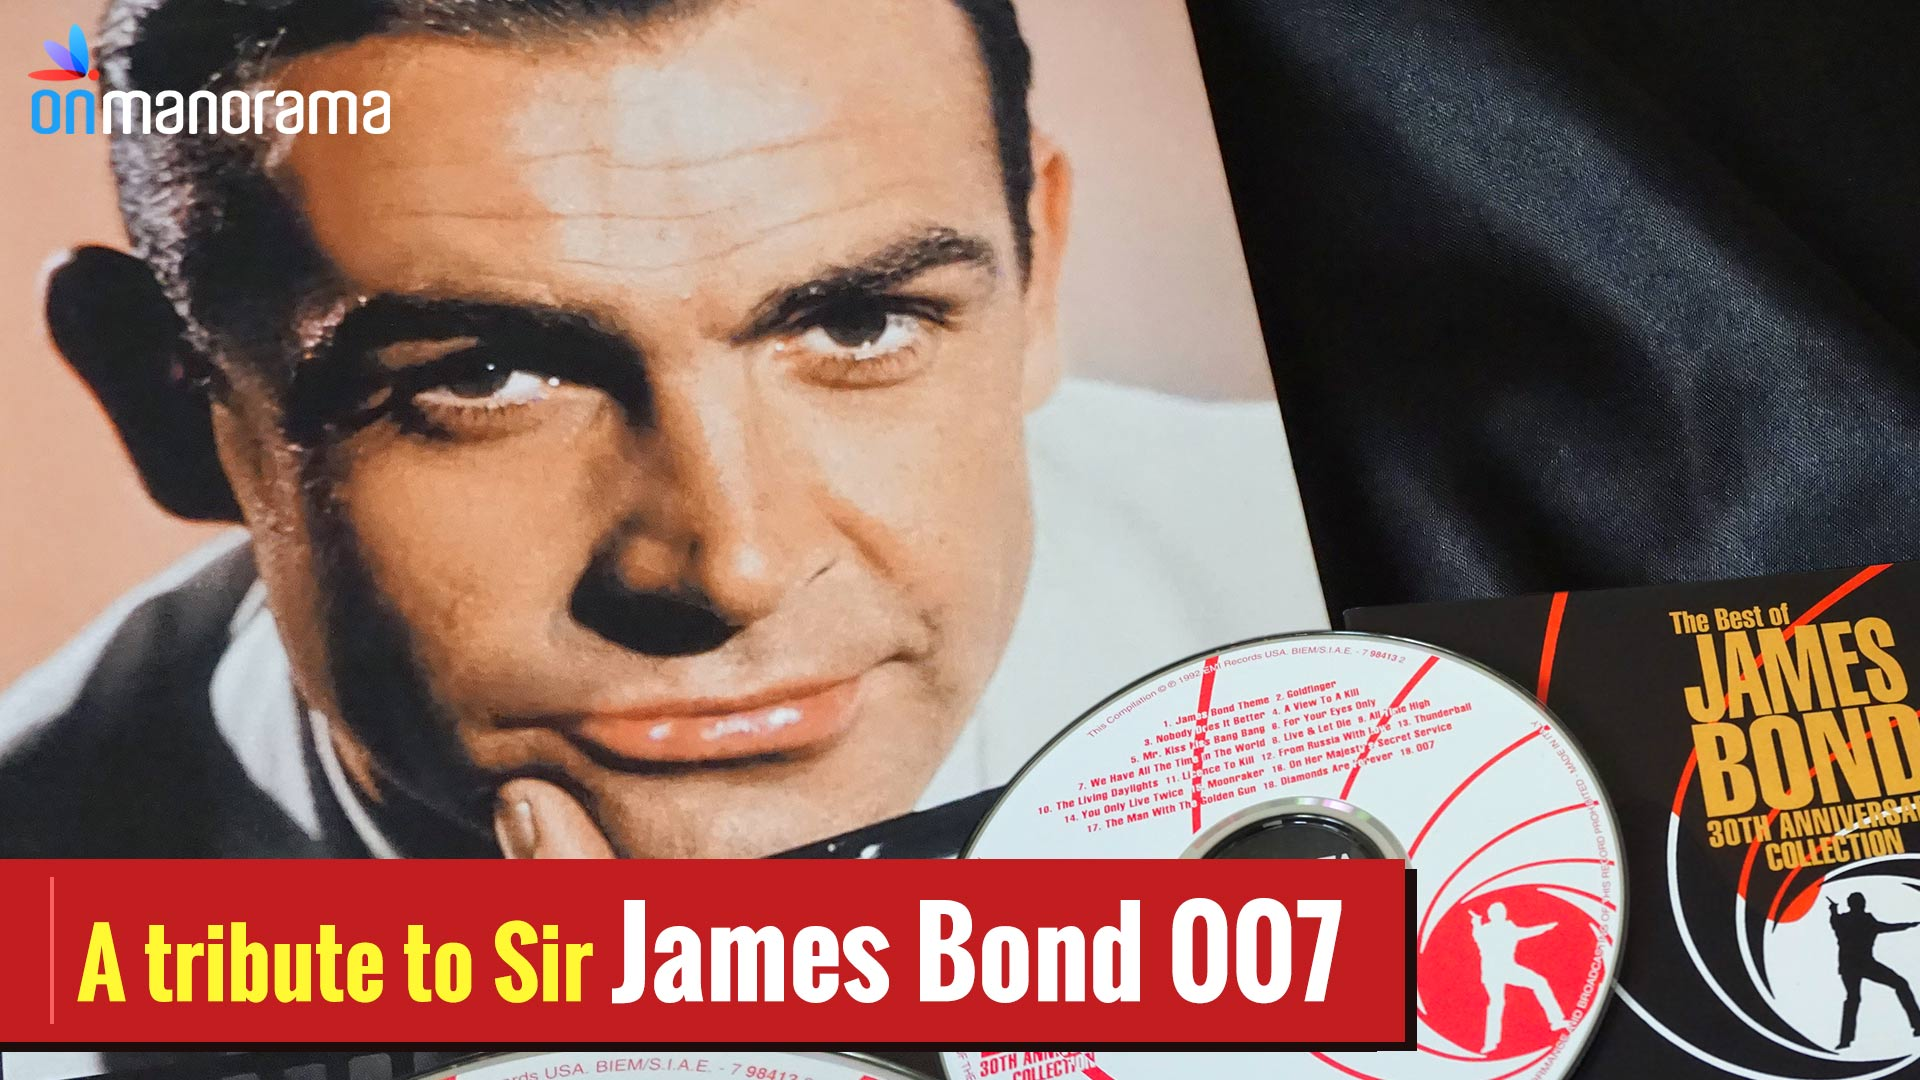 A tribute to Sir James Bond 007